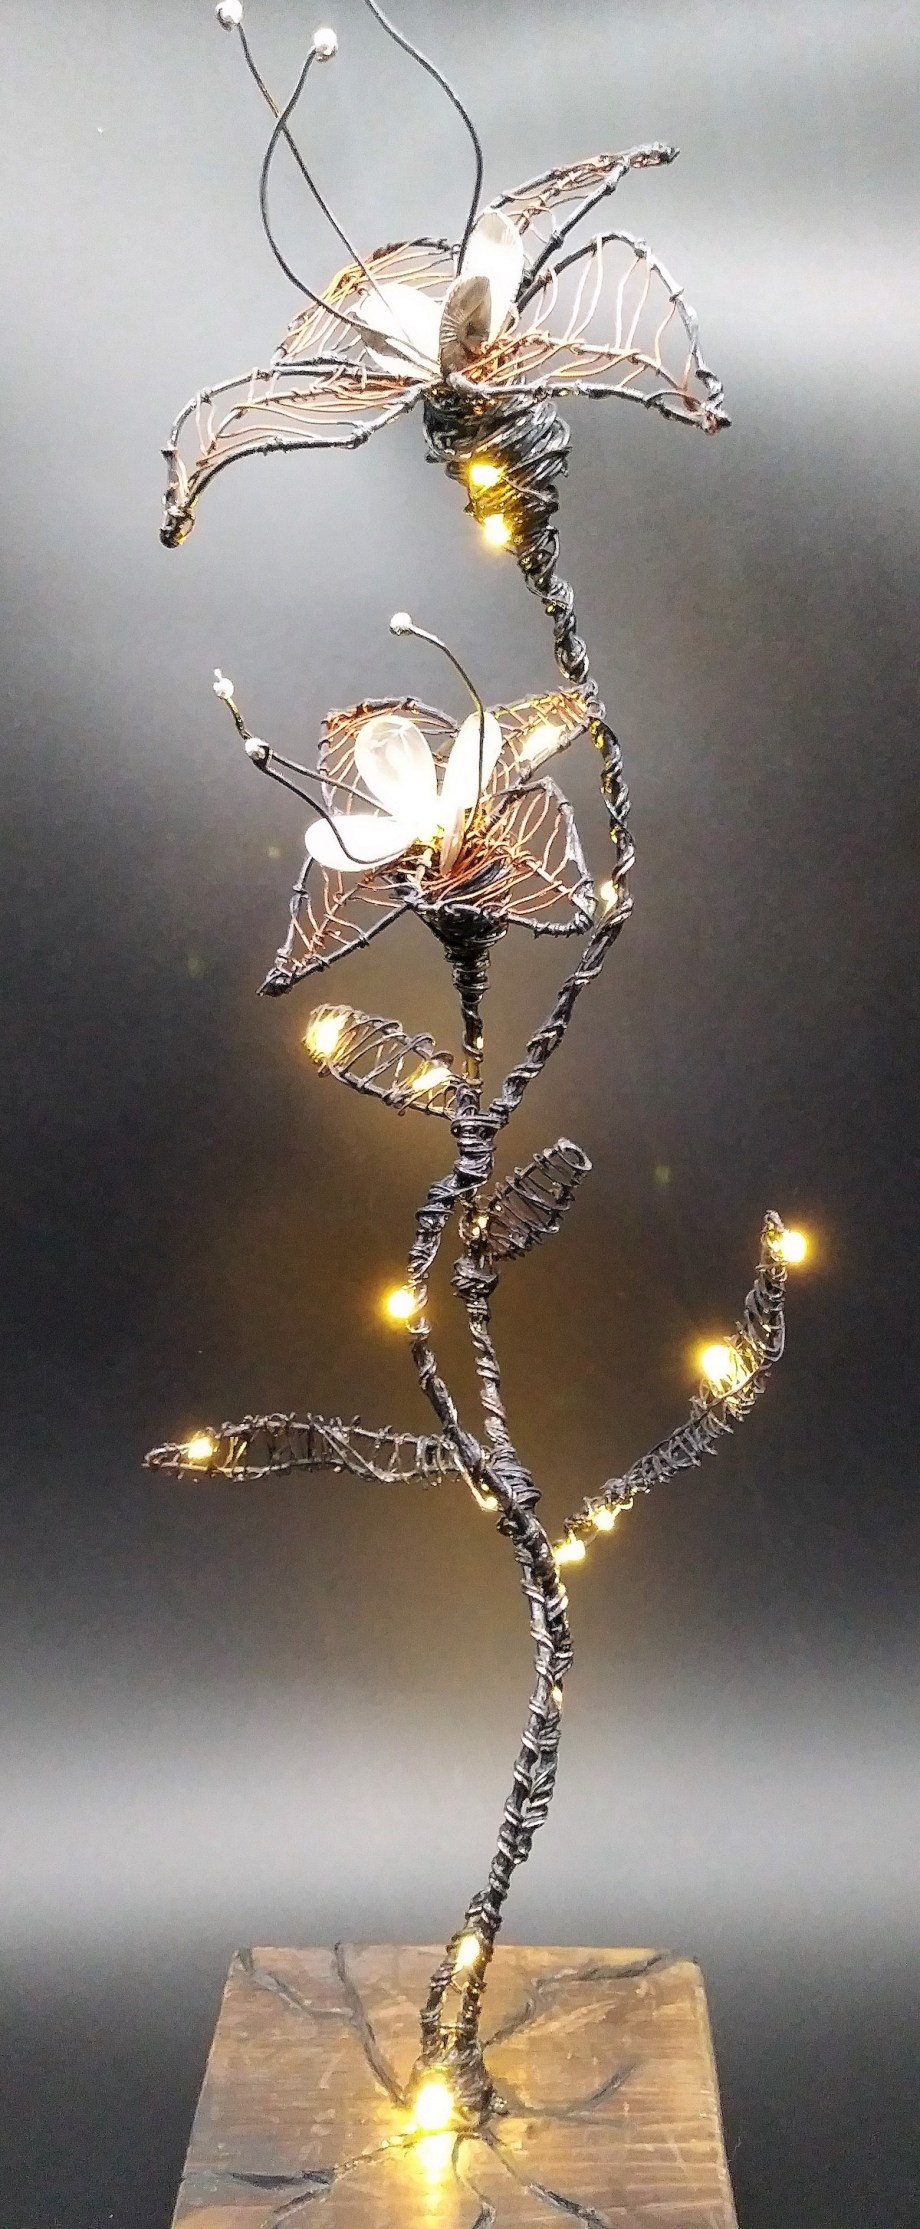 Fantasy Flowers   Mixed media sculpture   14in H x 5in L x 4in W